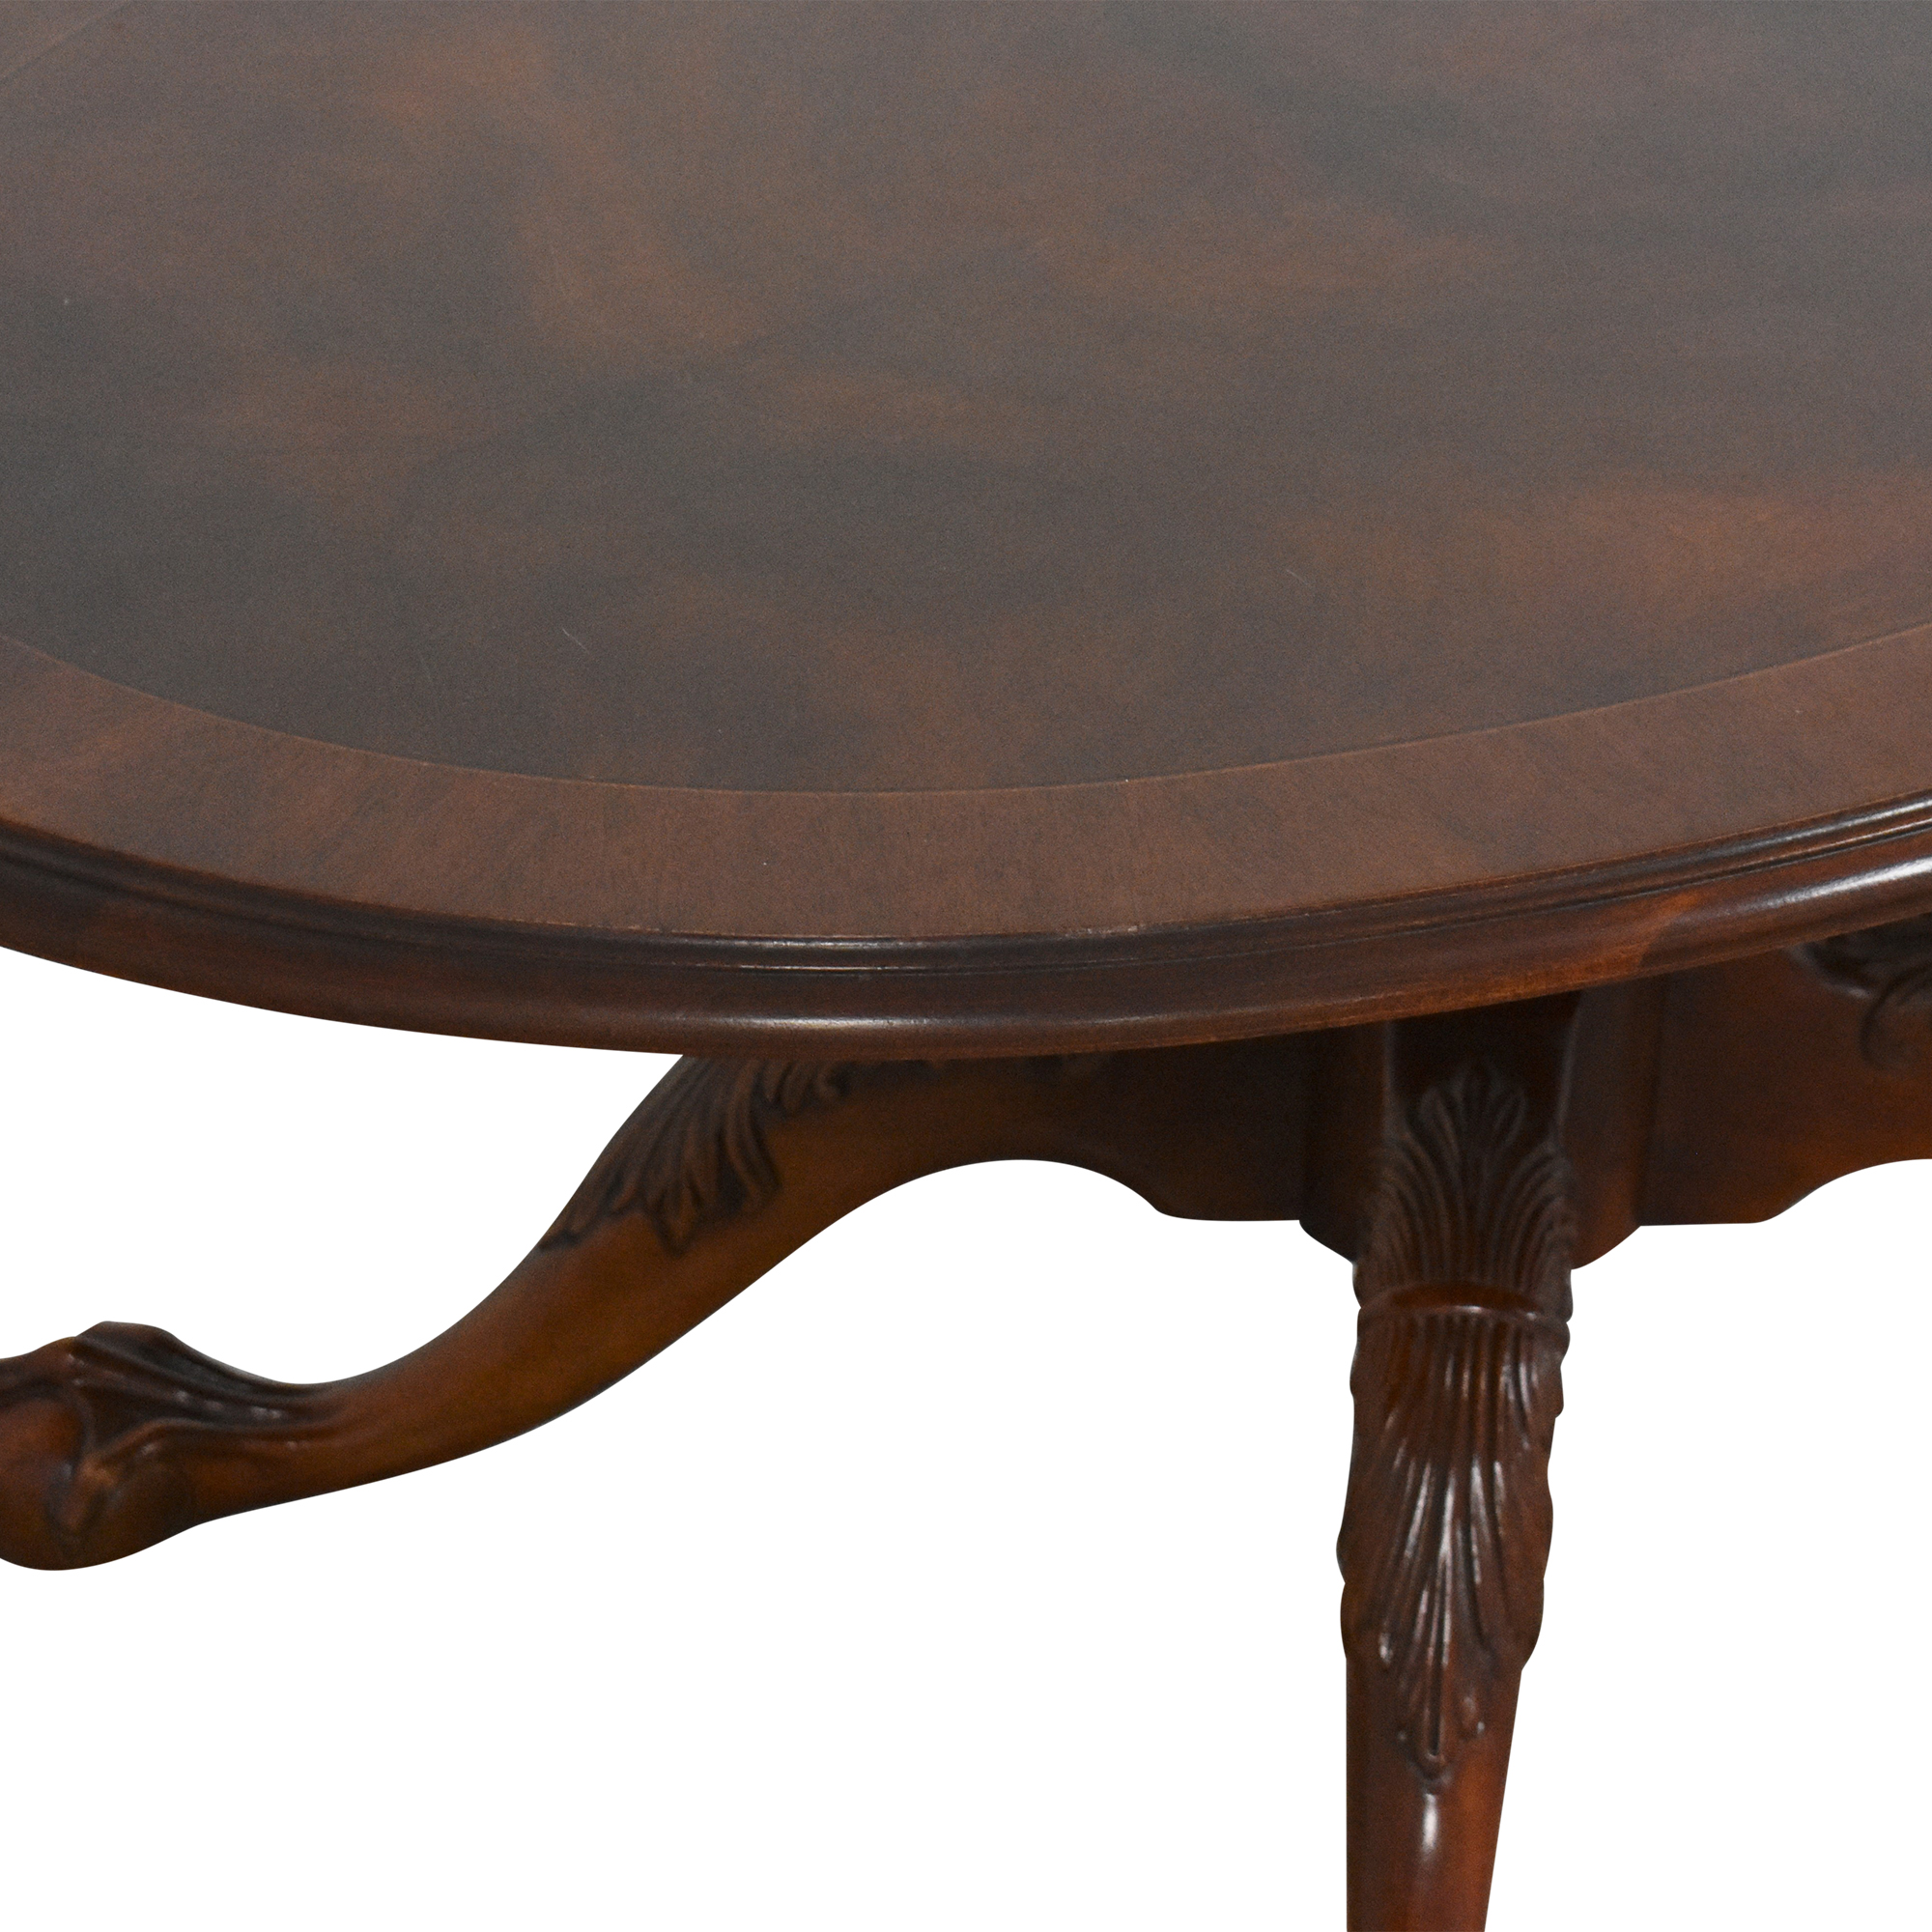 Ethan Allen 18th Century Collection Oval Coffee Table / Coffee Tables